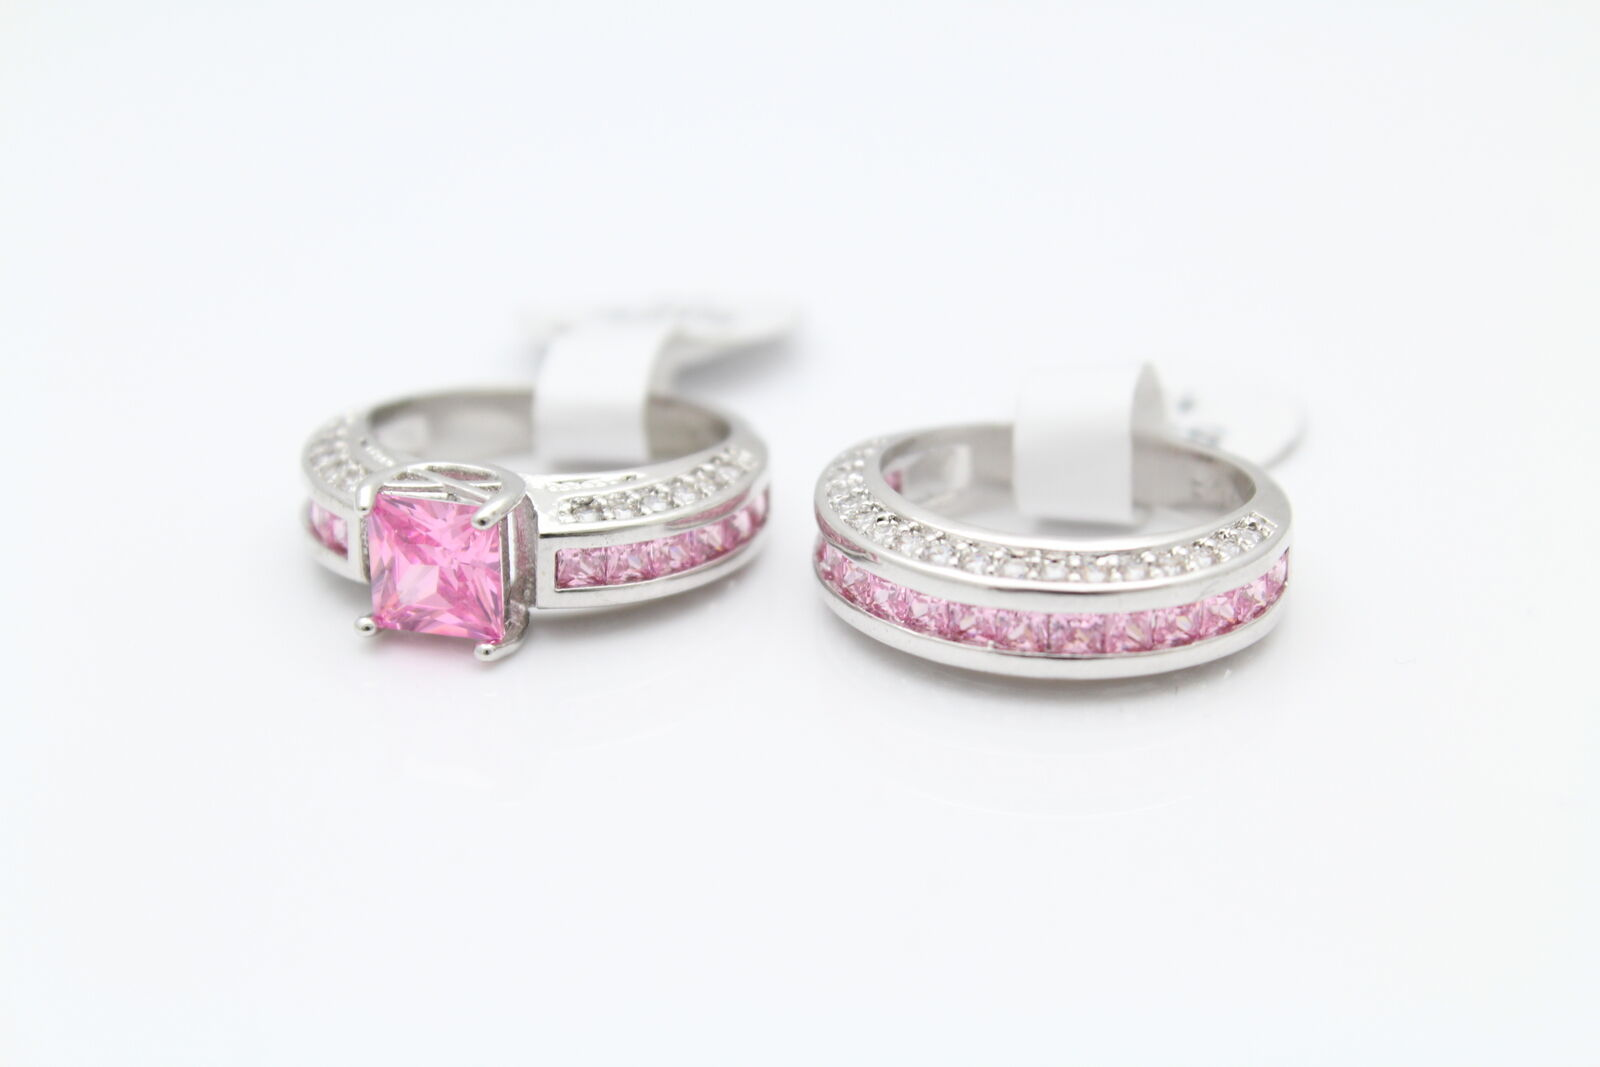 Bridal Ring Set With Imitation Pink Sapphires & CZs in 10K gold Filled Size 5